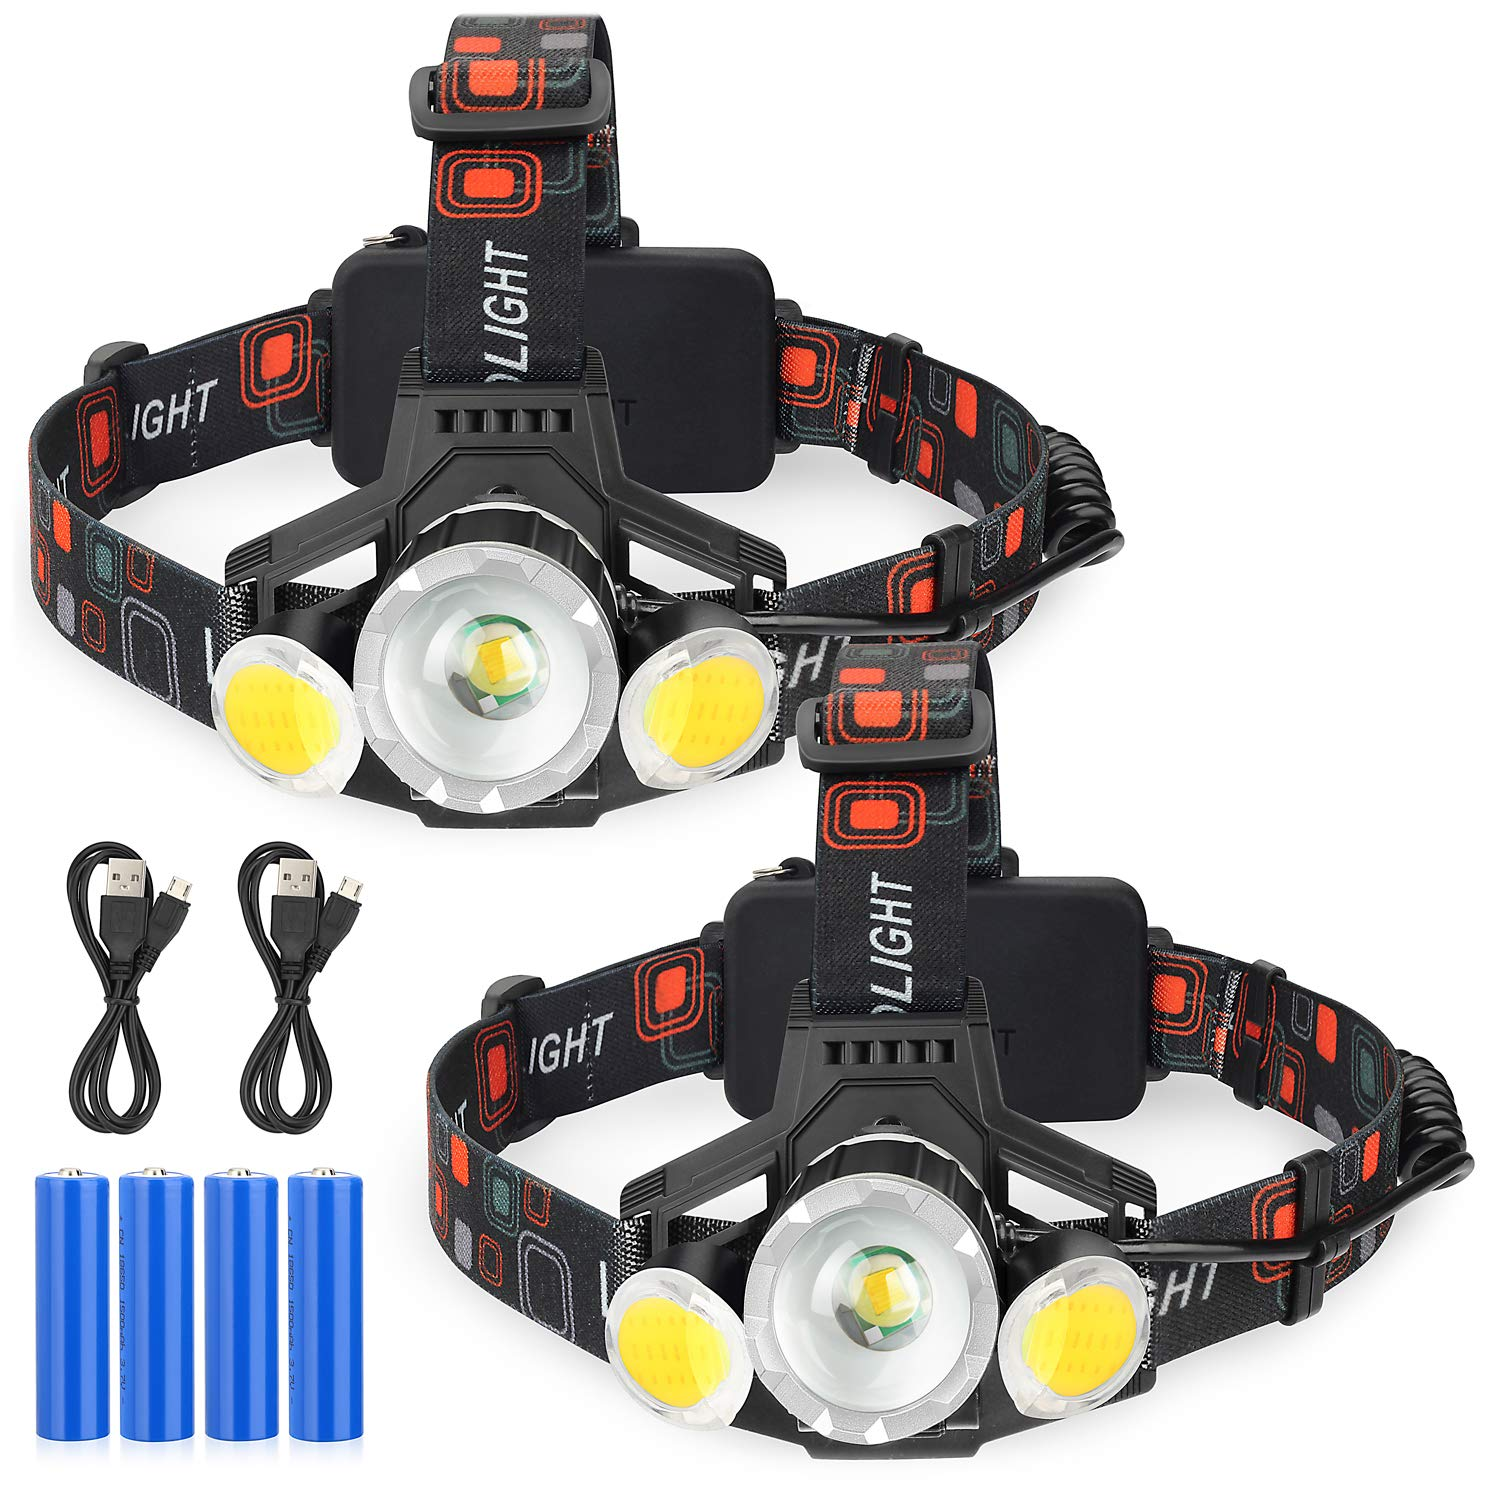 Rechargeable LED Headlamp, 2019 Newest 10000 Lumen Super Bright Zoomable Headlamp, 4 Modes Headlight, USB Rechargeable Flashlight, Waterproof Head Lamp Red Light for Camping Hiking Outdoors, Pack of 2 by SHINE HAI